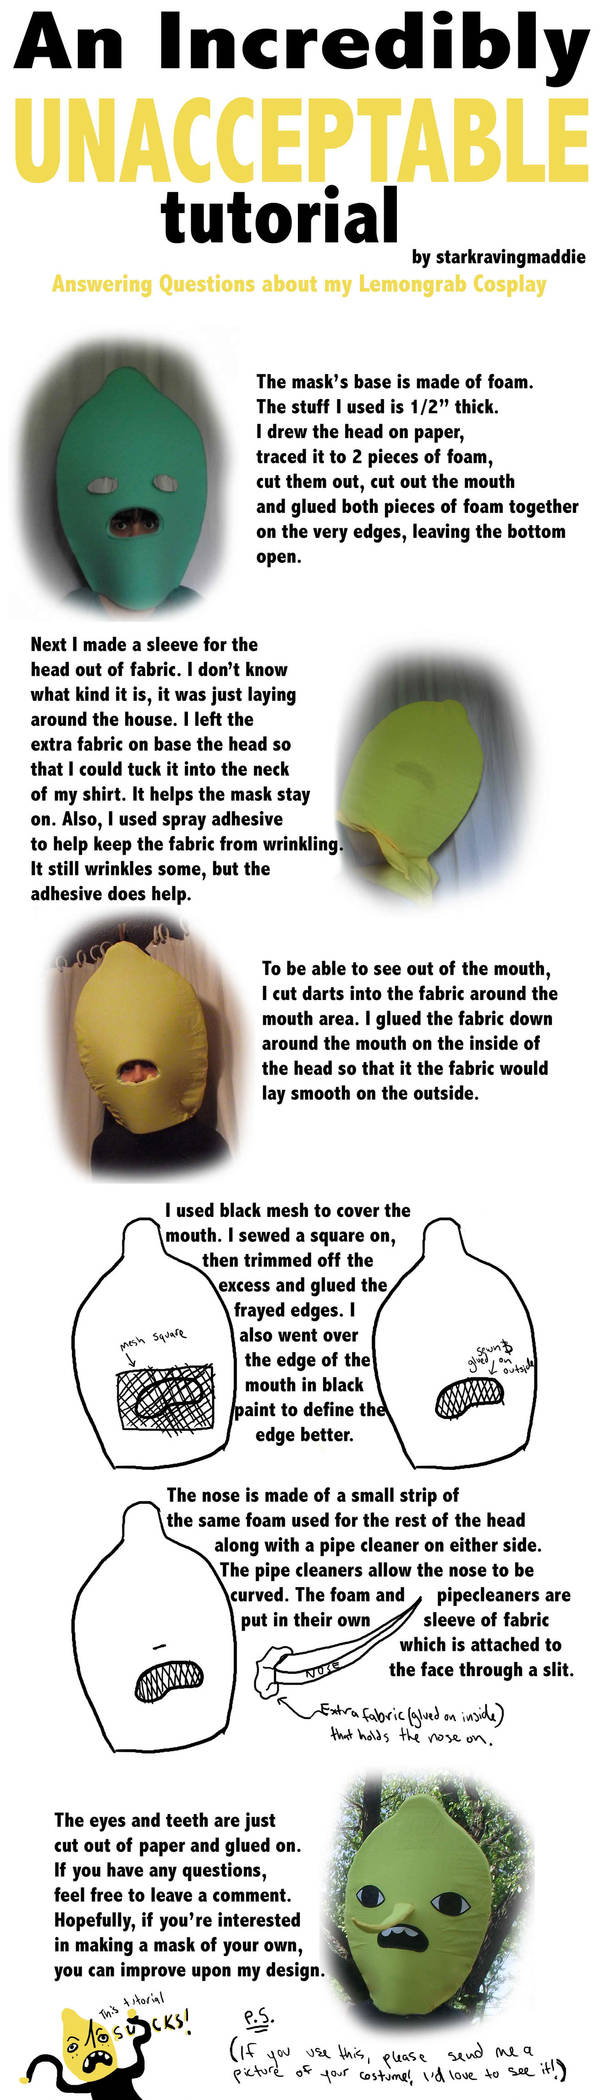 Lame Lemongrab Tutorial By Starkravingmaddie On Deviantart